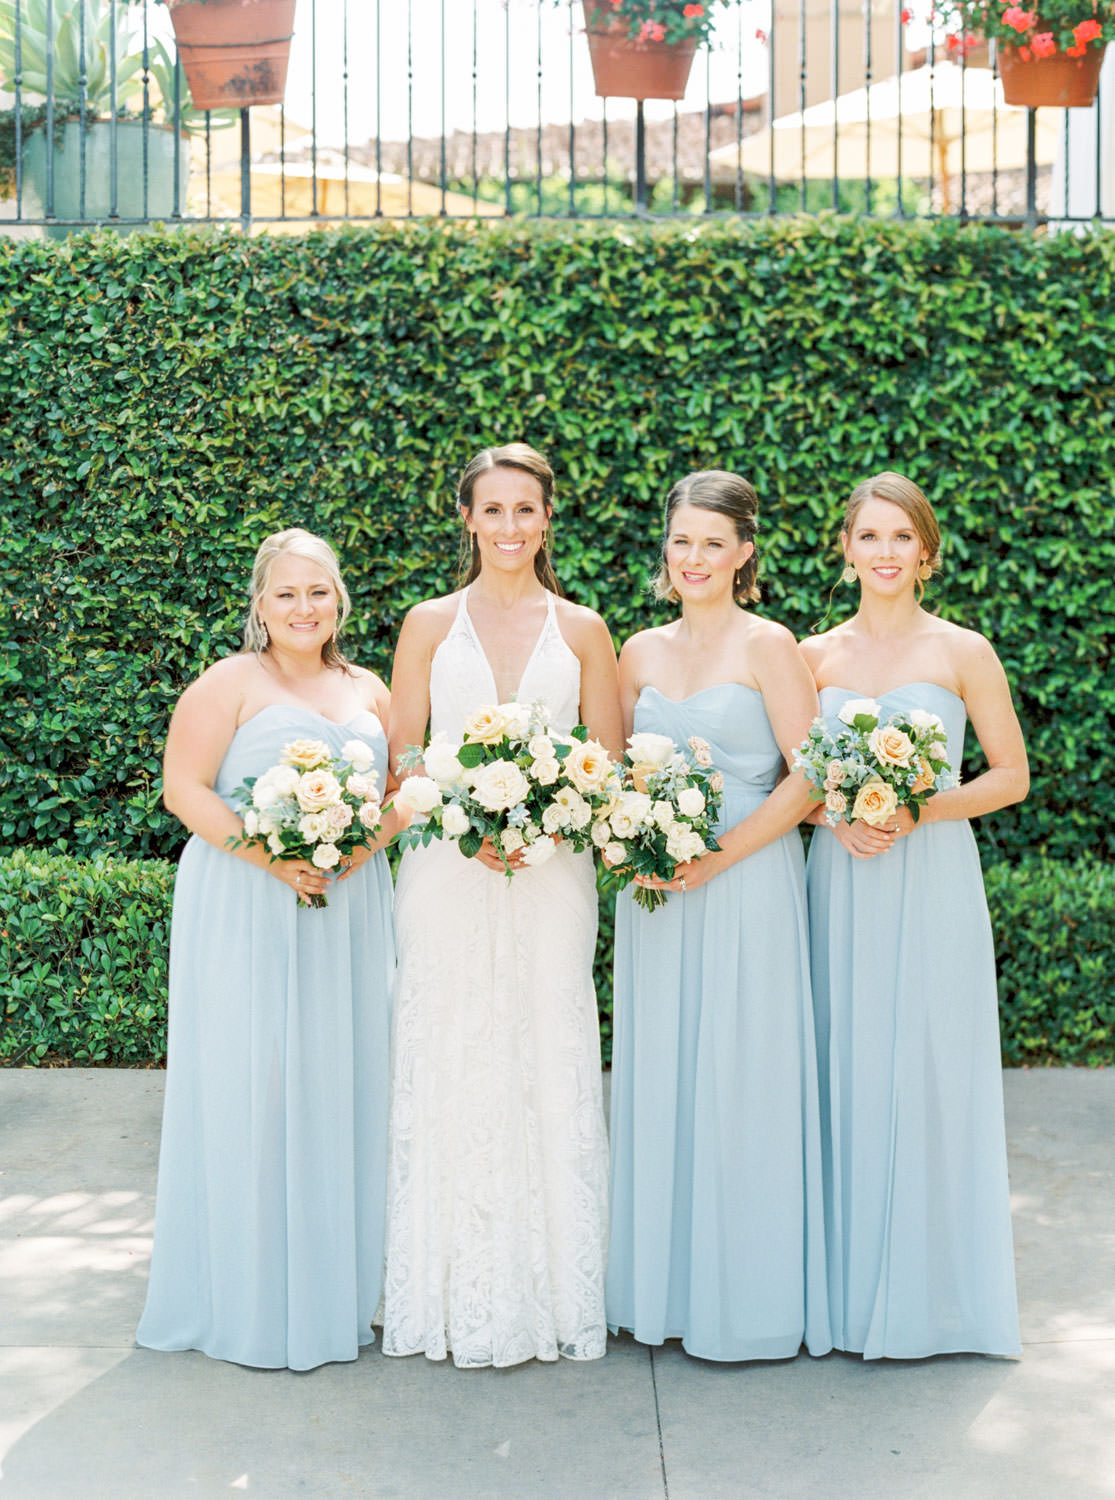 Blue bridesmaid dresses, Bridal party portrait in a Rue de Seine gown, White green and blue wedding at the Santaluz Club, Cavin Elizabeth Photography